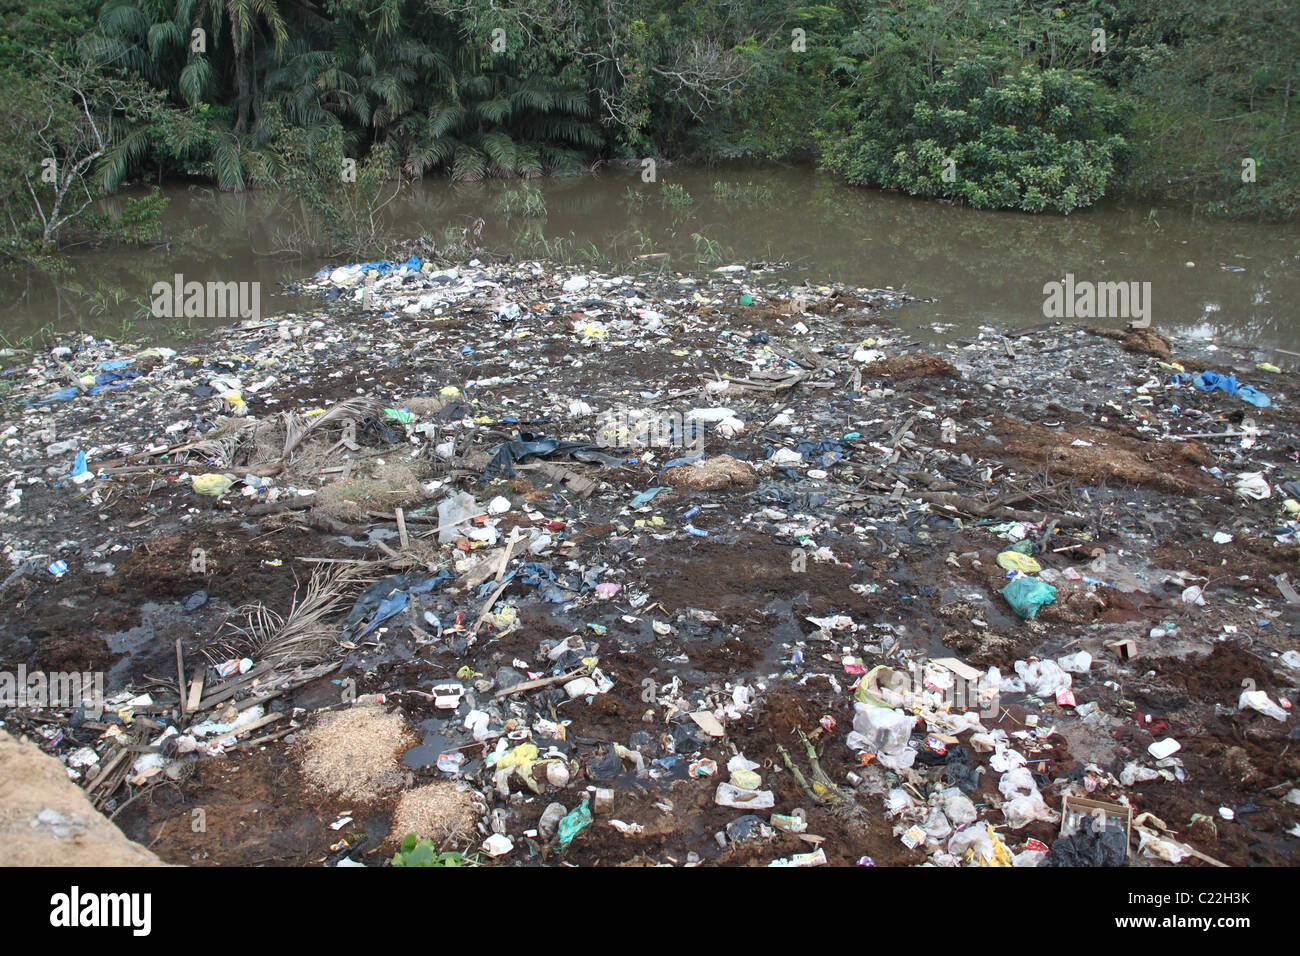 Polluted Water Peru - Stock Image